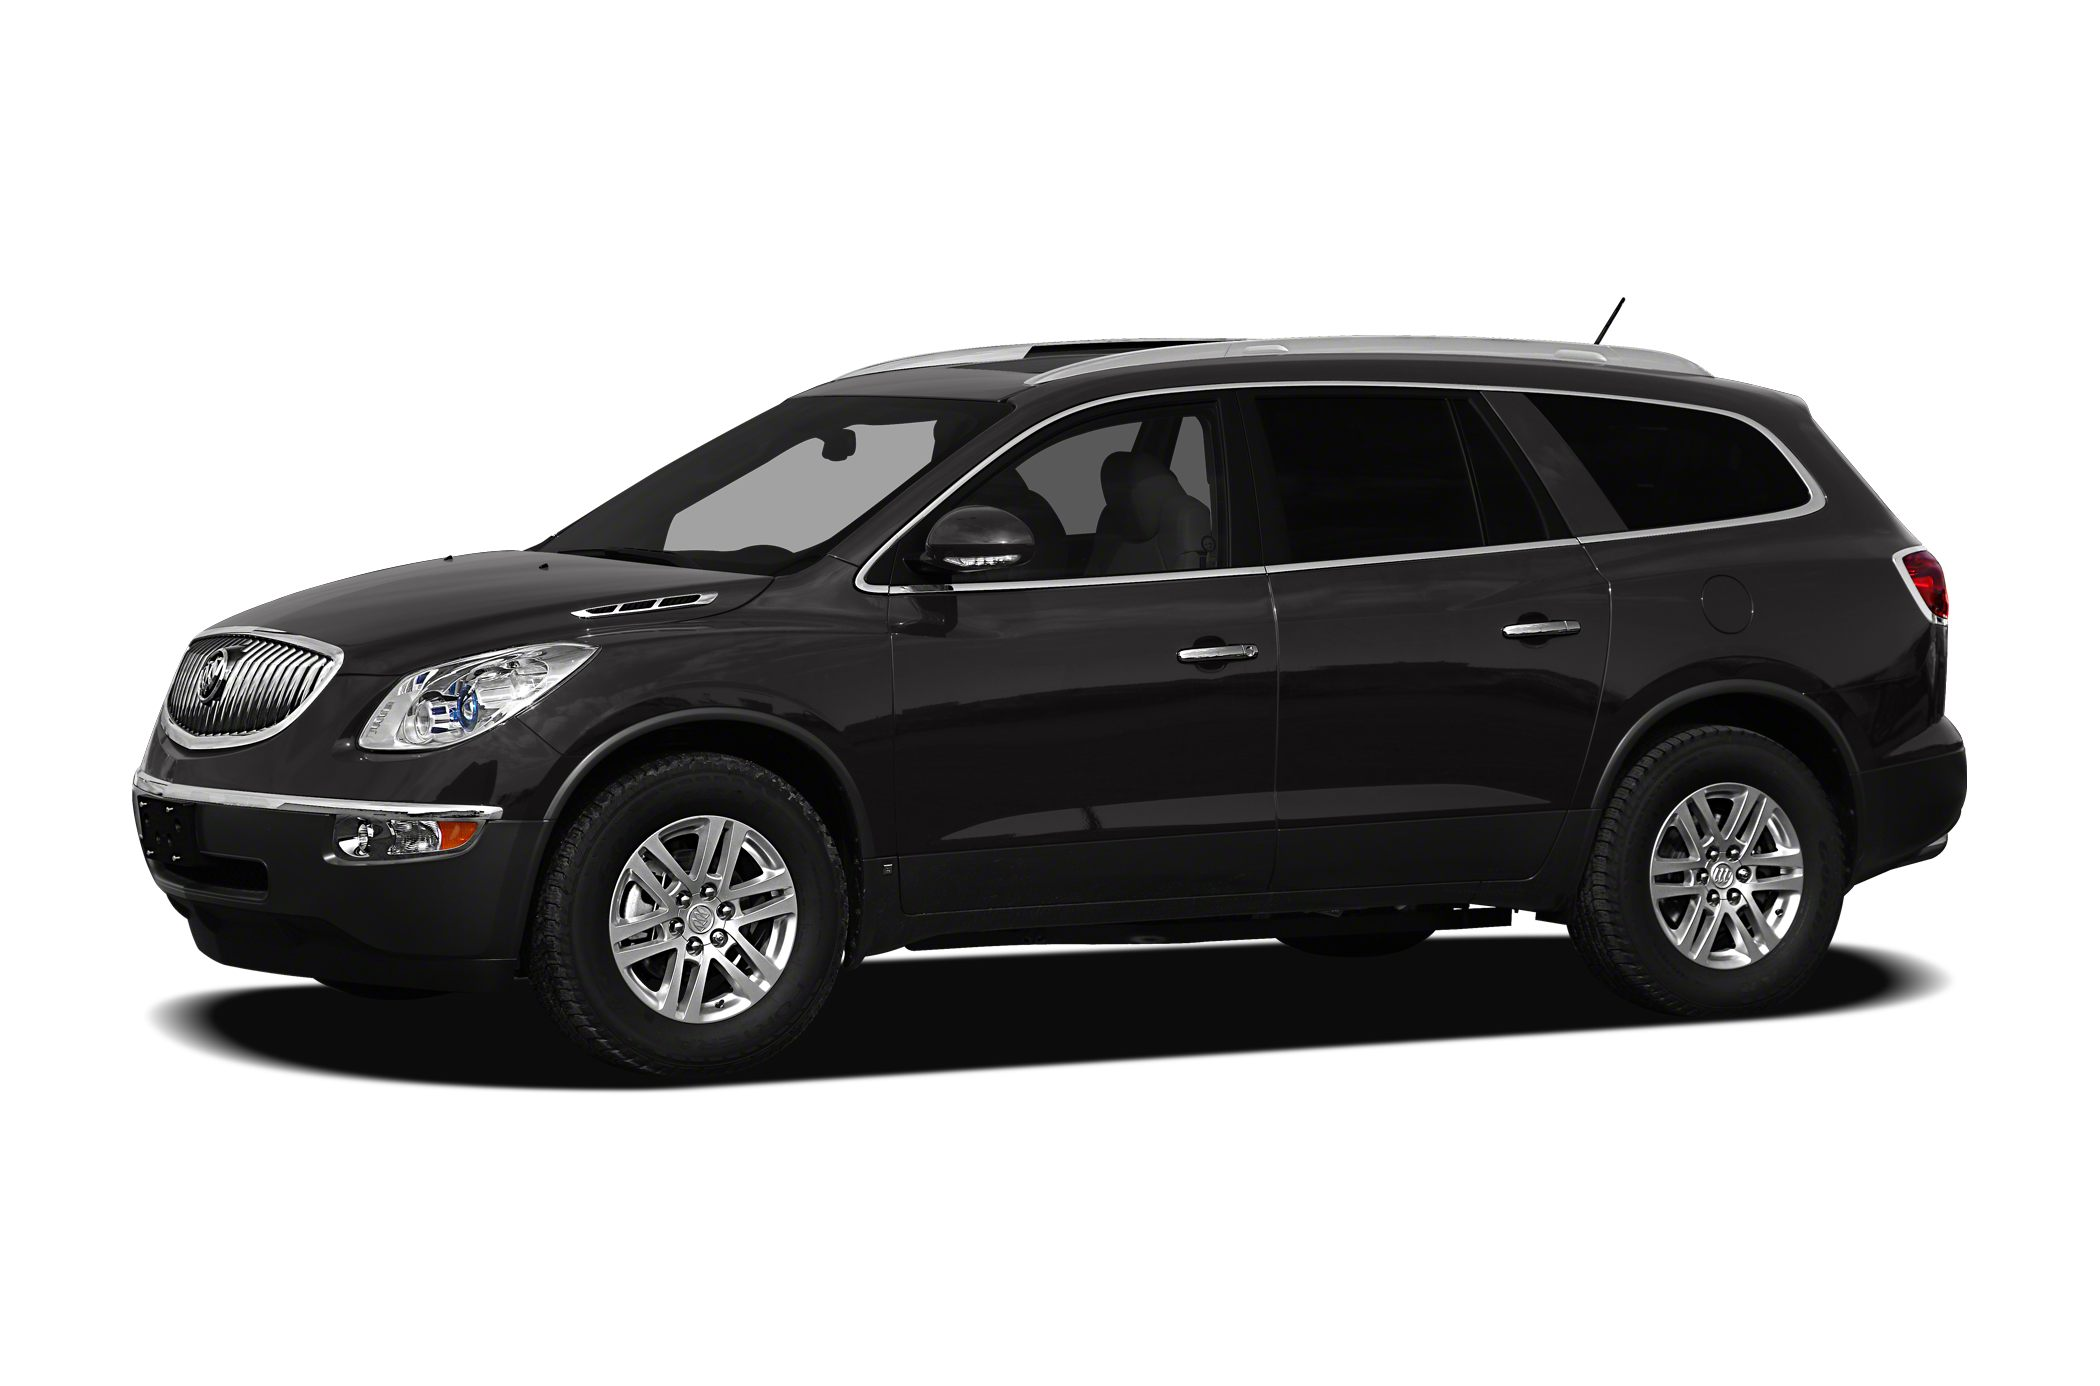 2012 Buick Enclave Leather New In Stock CARFAX 1 owner and buyback guarantee Move quickly Thi